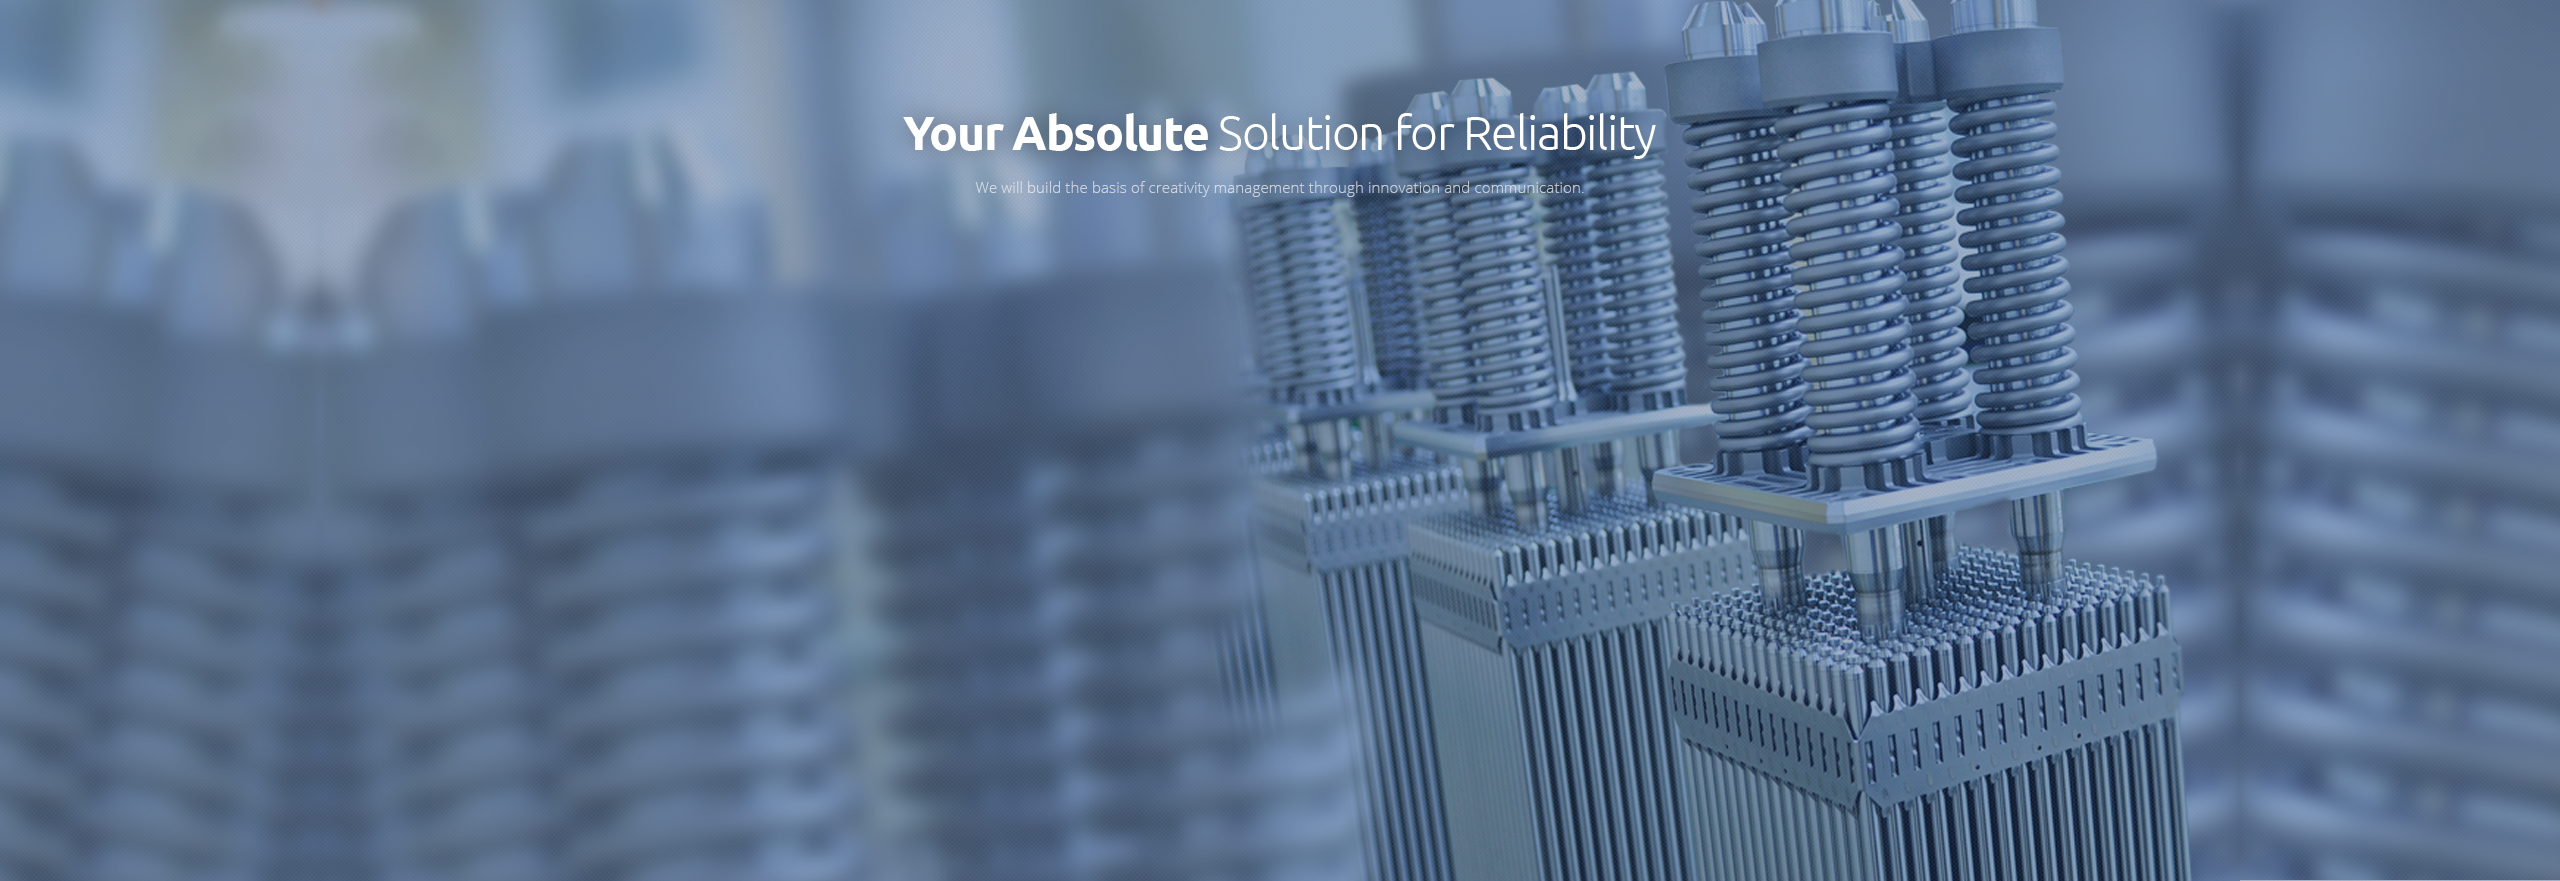 Your Absolute Solution for Reliability